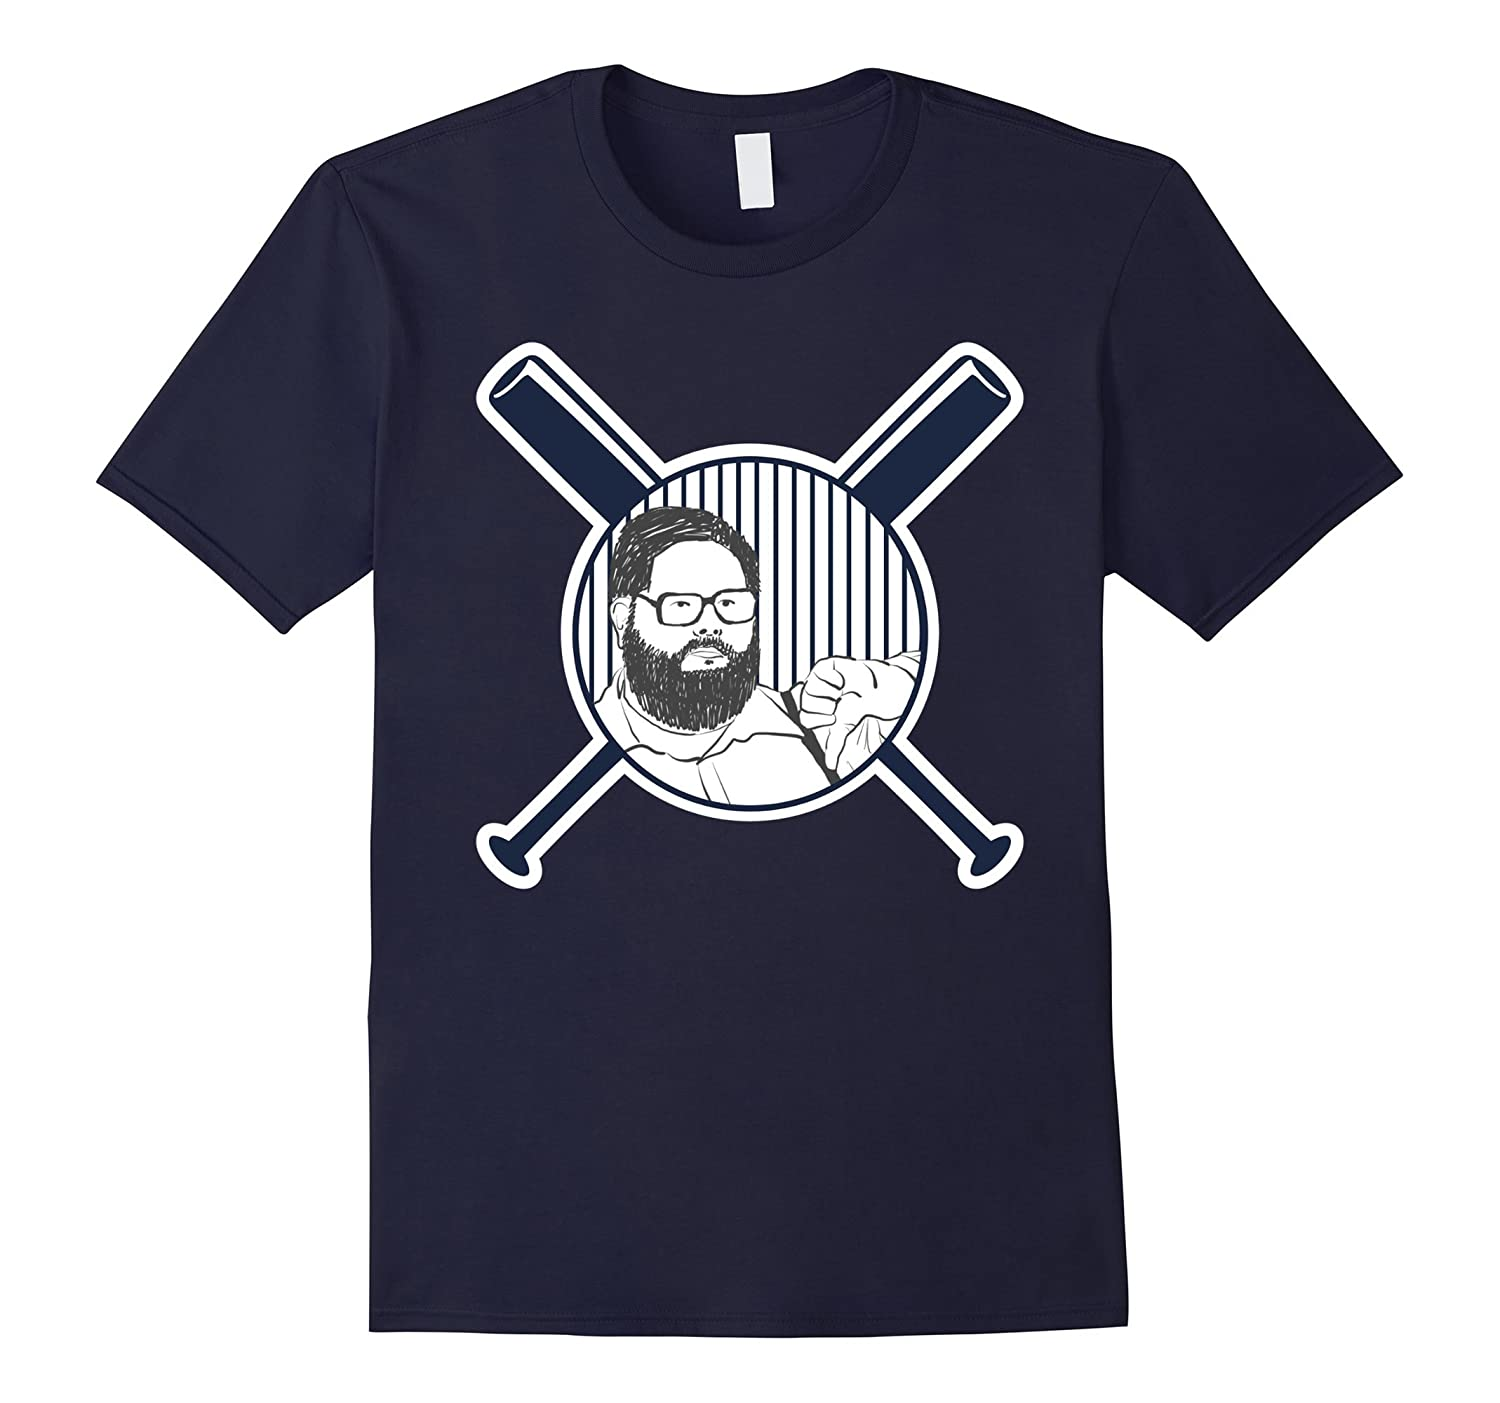 Thumbs Down Shirt Featuring Baseball's Thumbs Down Guy-T-Shirt